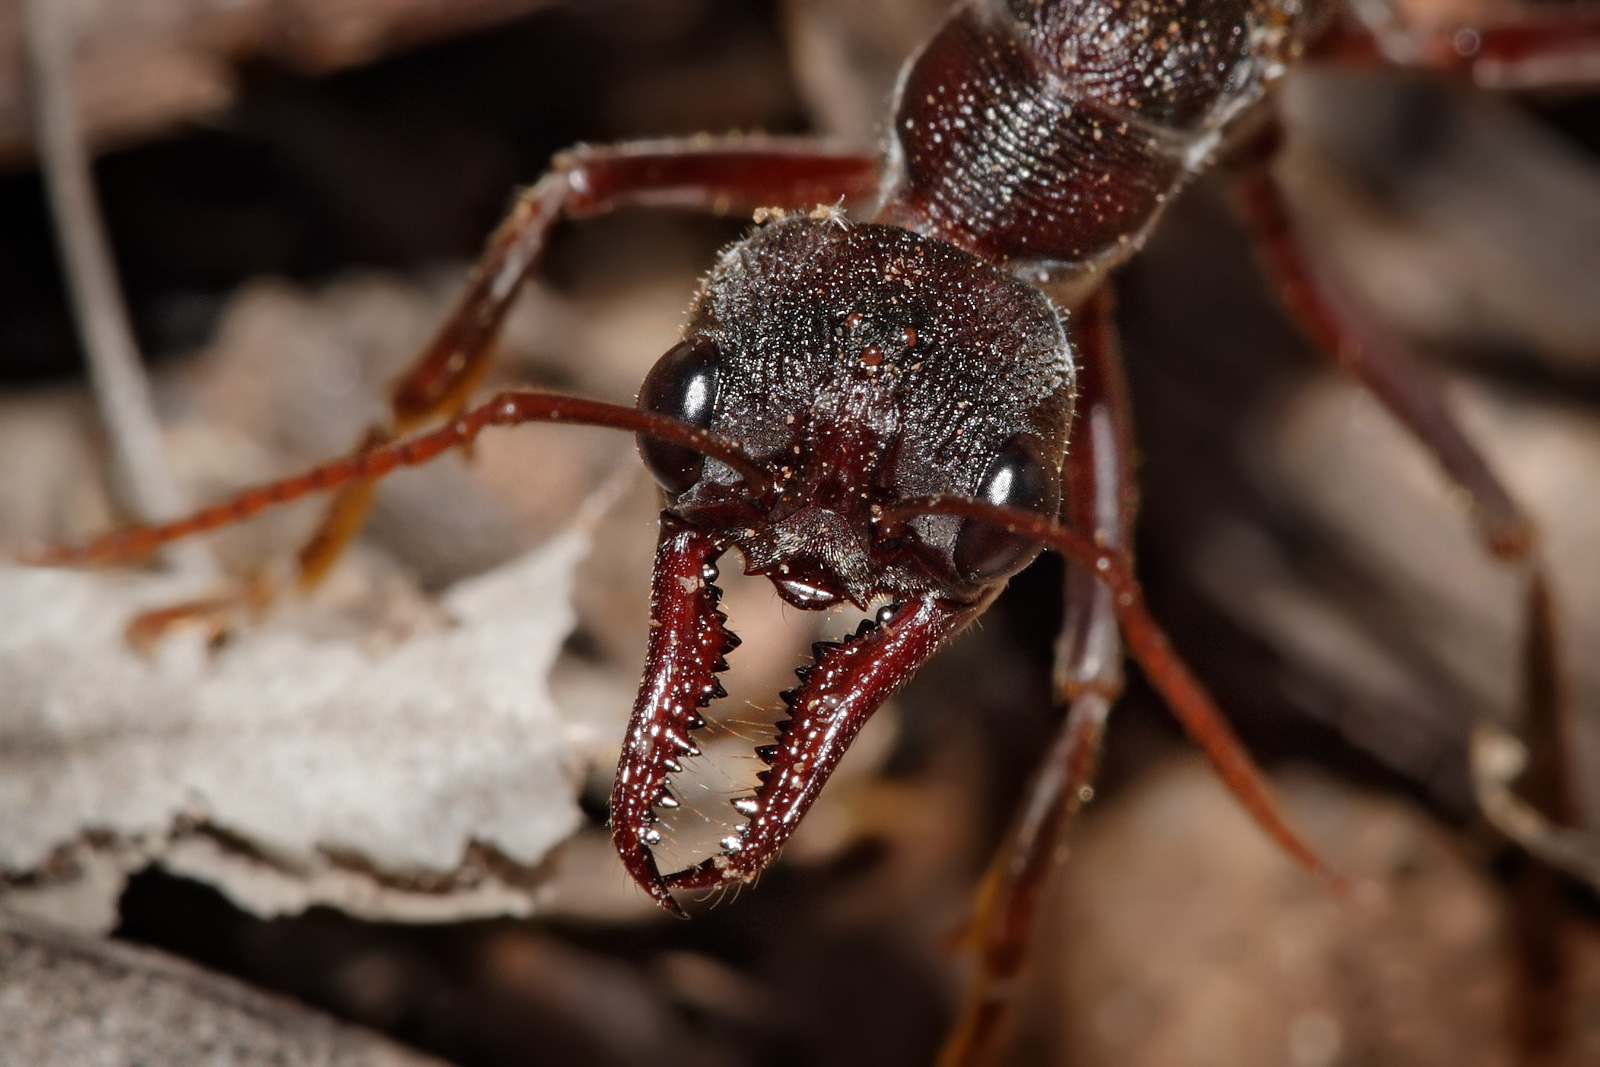 Close-up of a bull ant, found in bushland surrounding Swifts Creek, Victoria (click to embiggen)